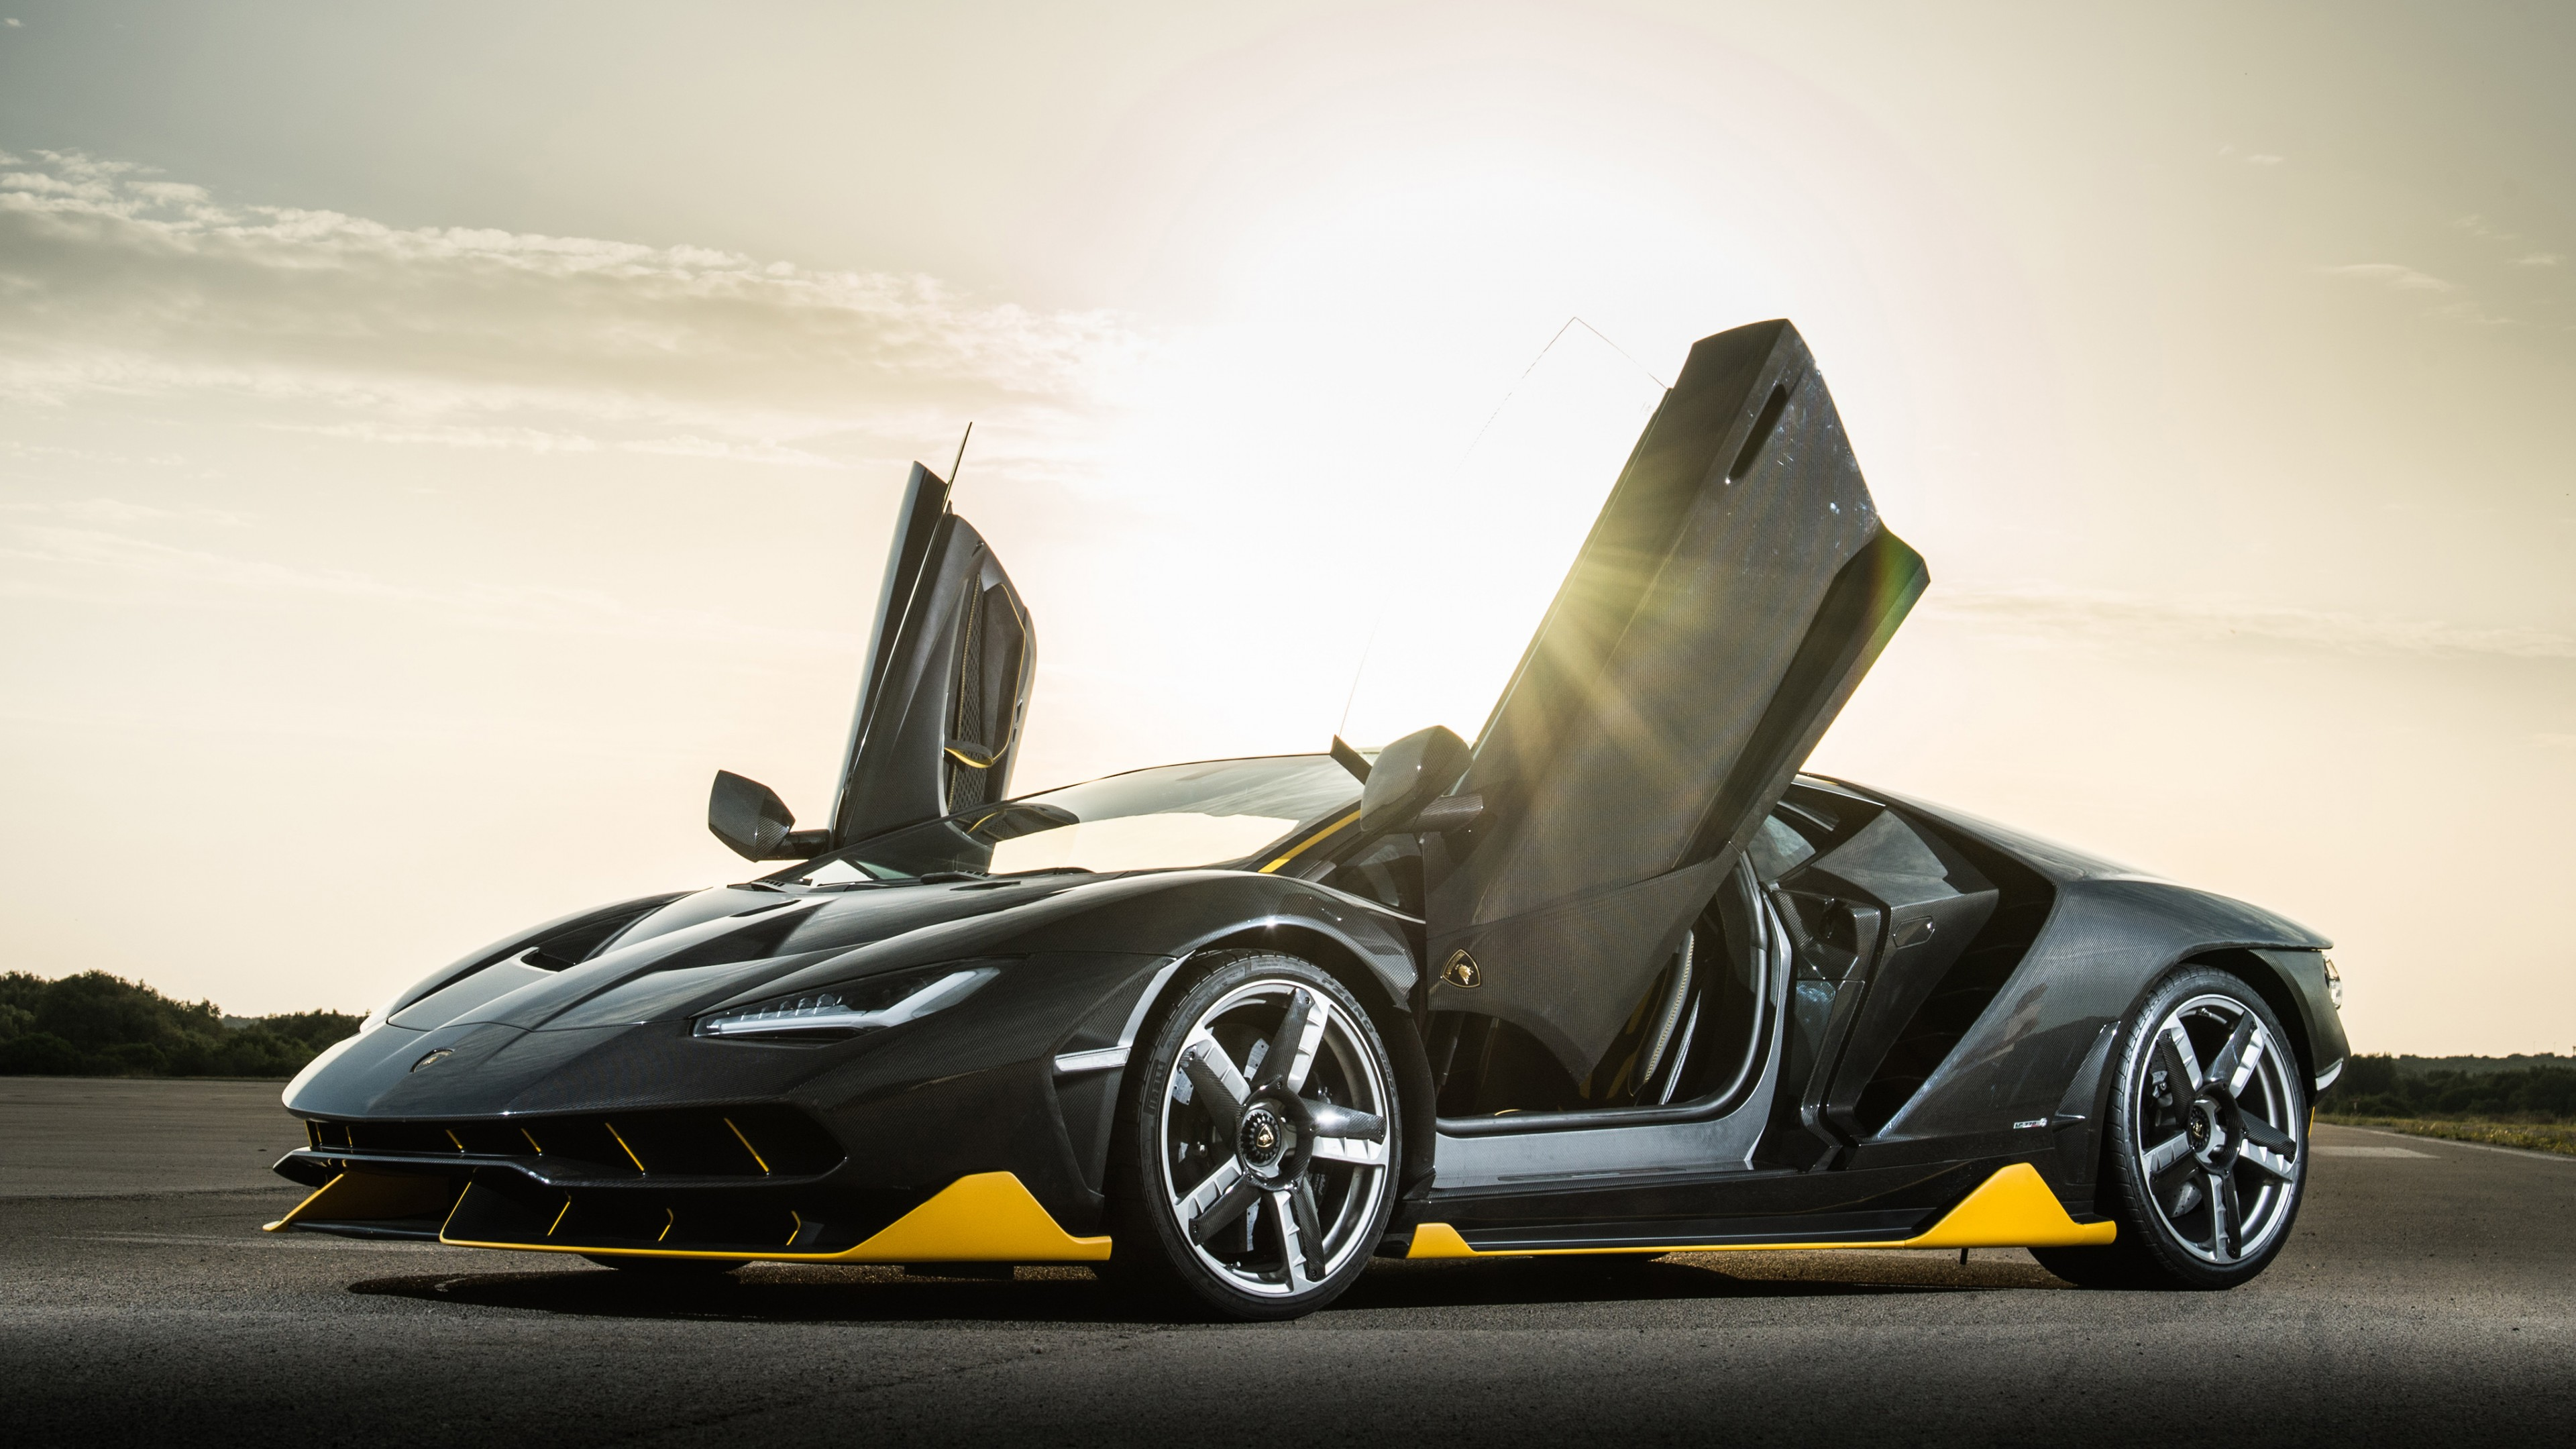 Wallpaper Lamborghini Centenario Coupe Supercar Black